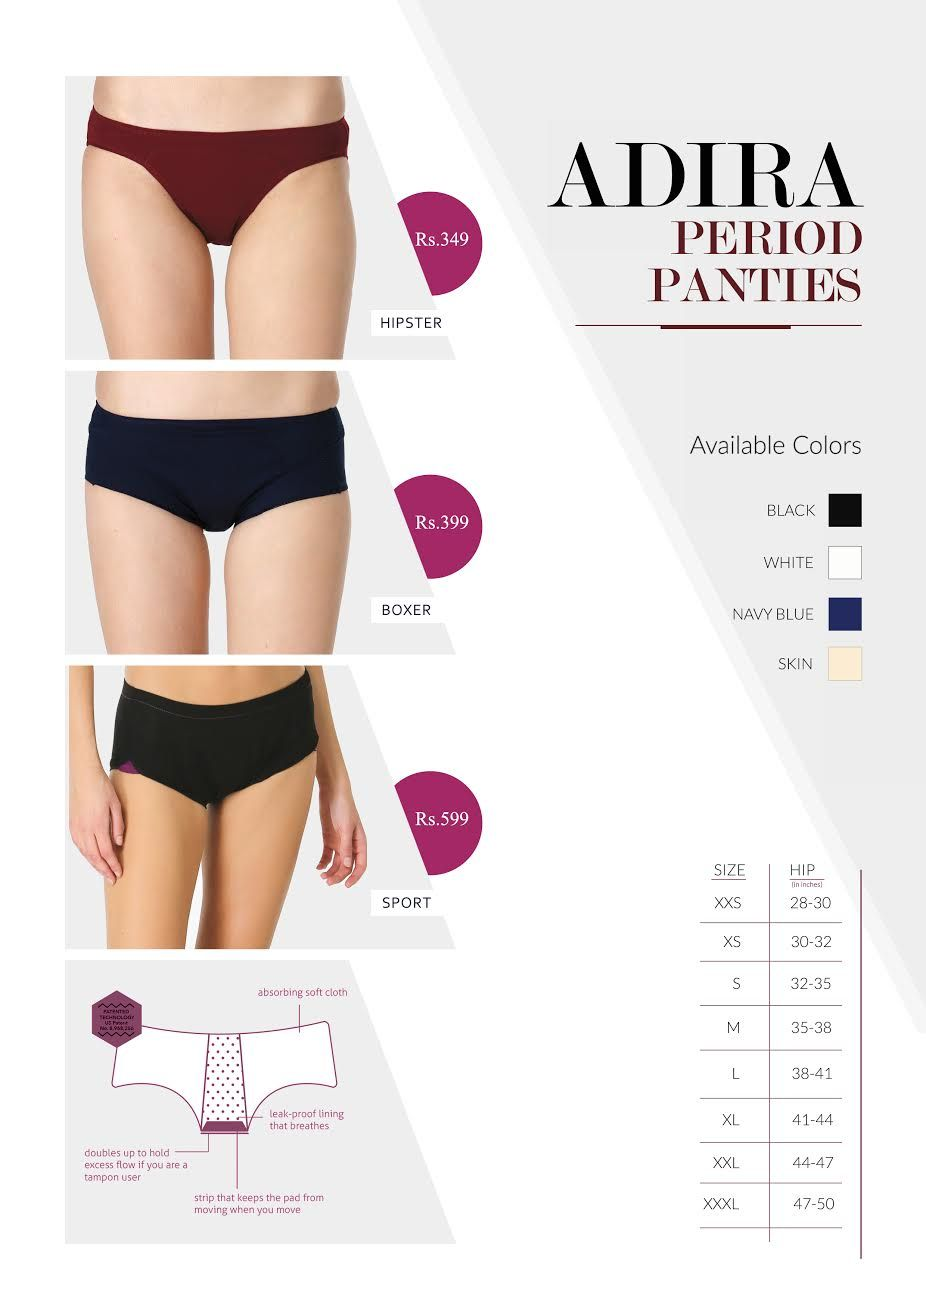 de903b16abb3fdbc44e3a53dc3b00d81 - How To Get Period Stains Out Of White Underwear